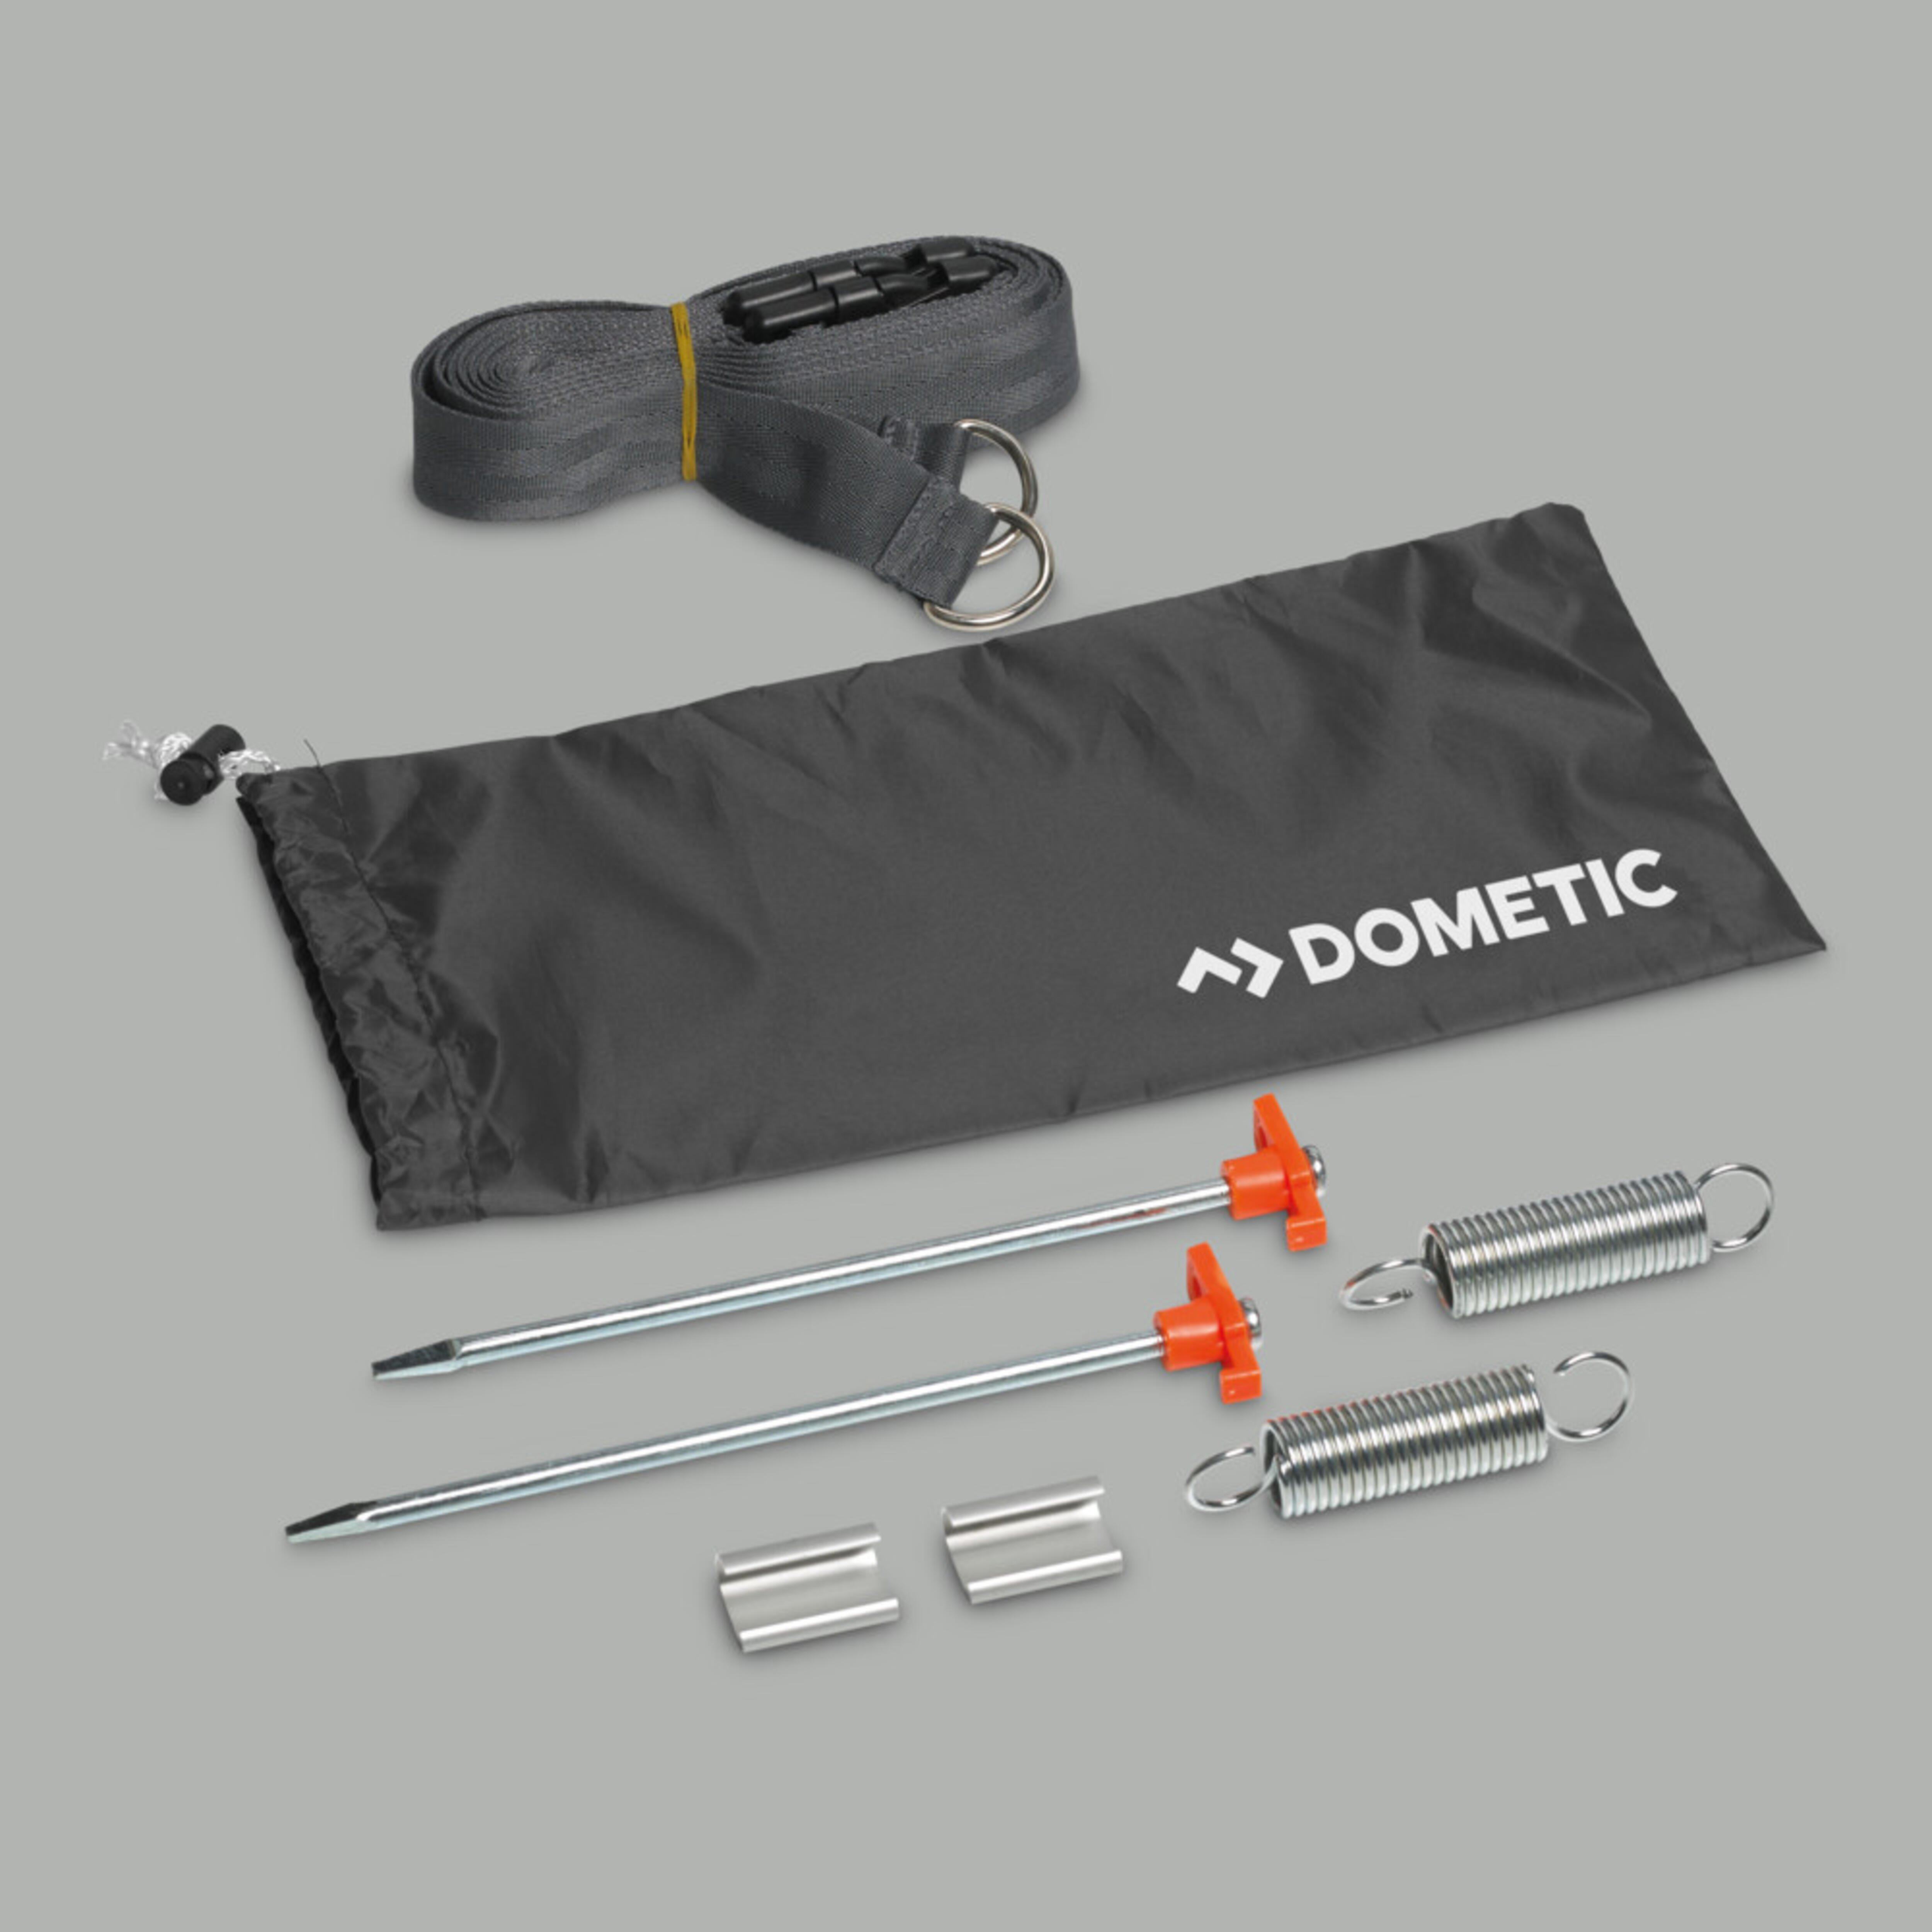 Dometic AW-TDKIT